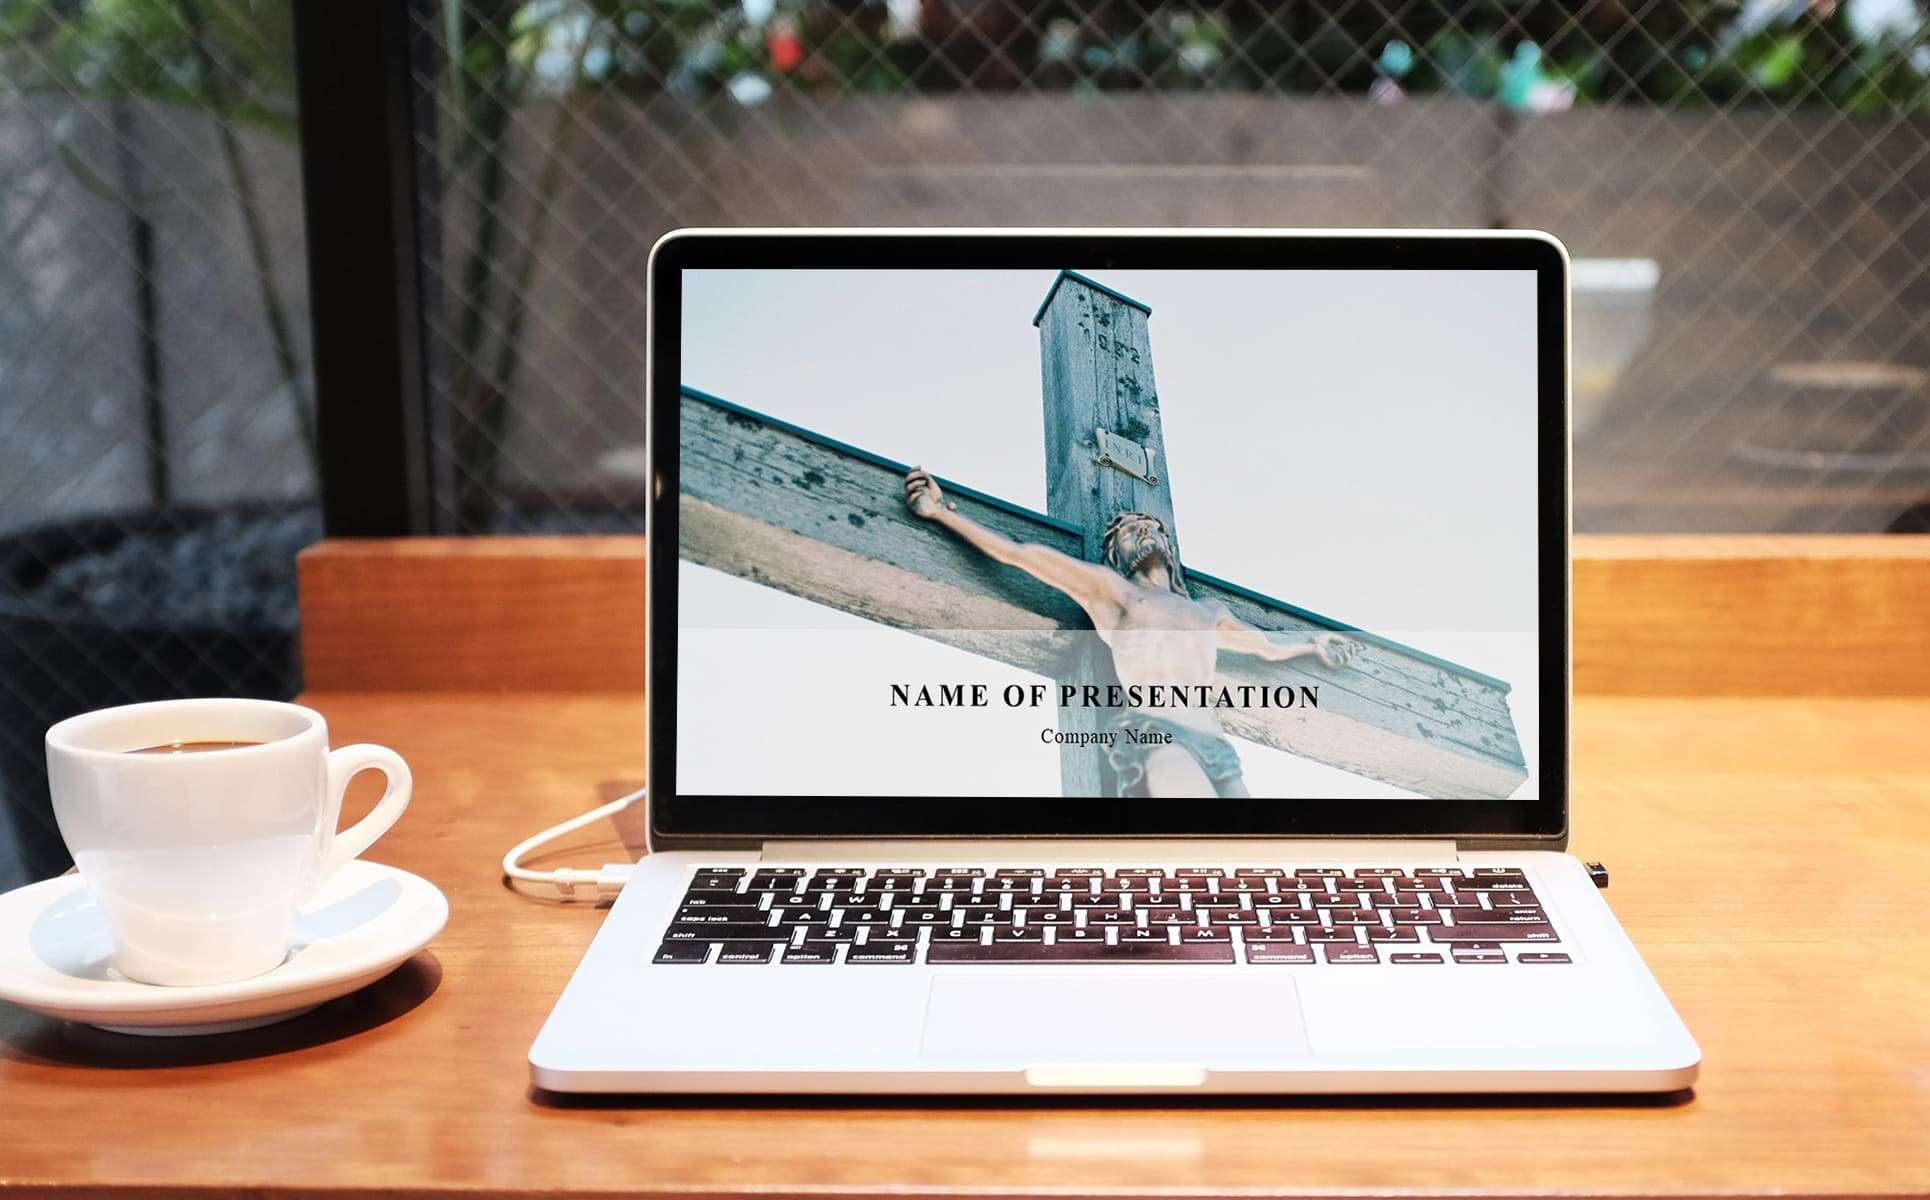 Worship Jesus Powerpoint Background-laptop on the table